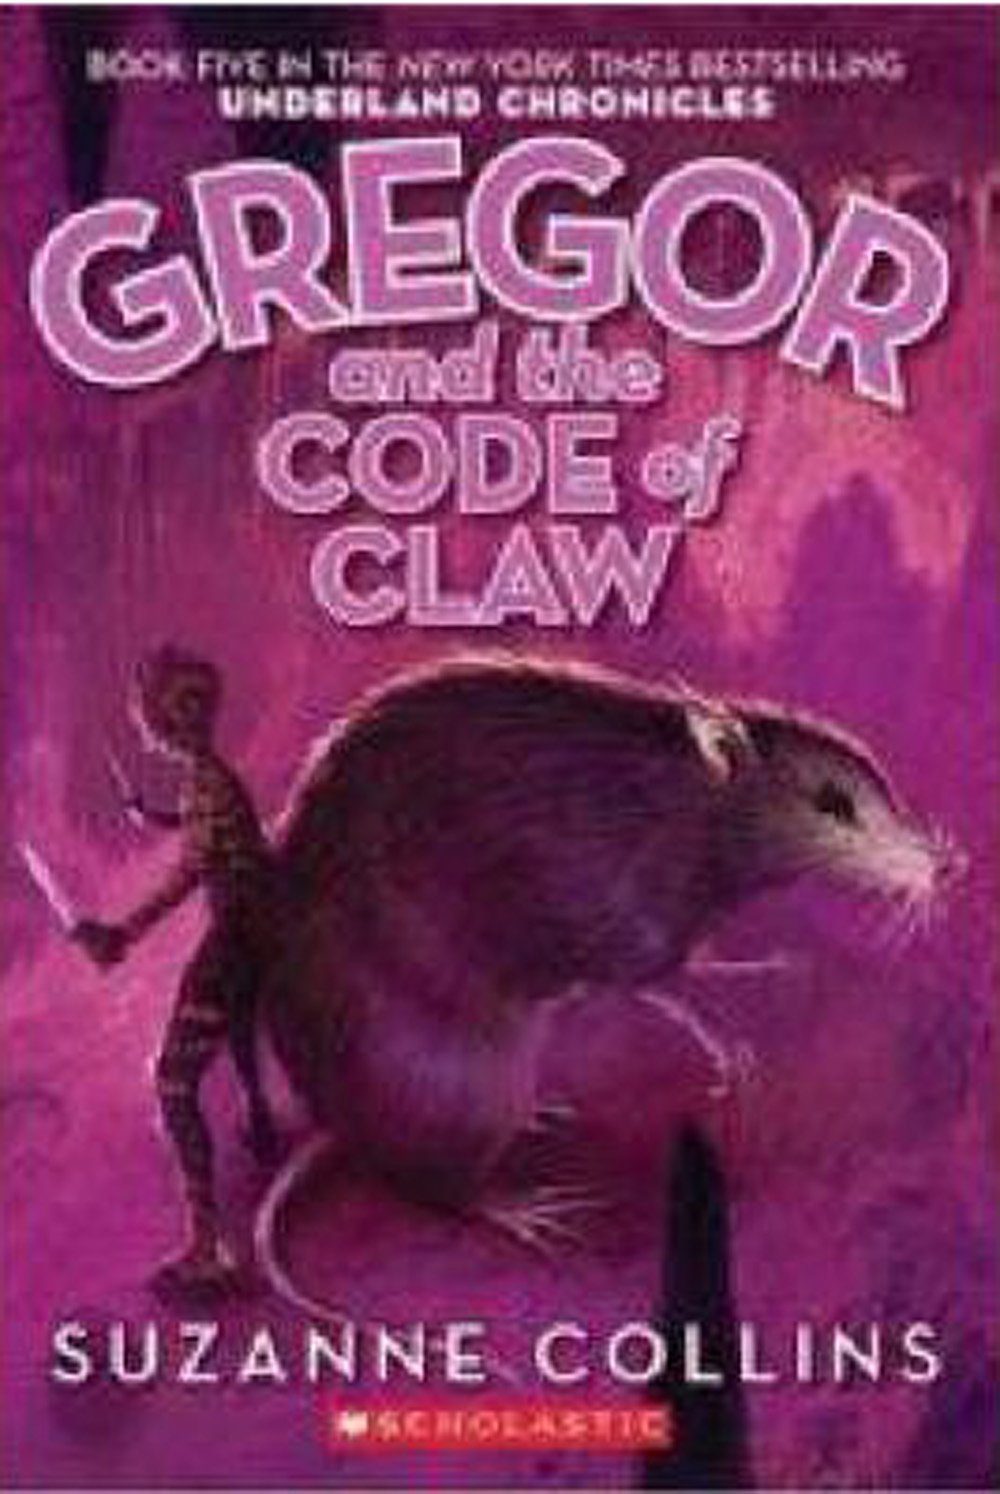 Gregor And The Code Of Claw (underland Chronicles, Book 5): Suzanne  Collins: 9780439791441: Amazon: Books